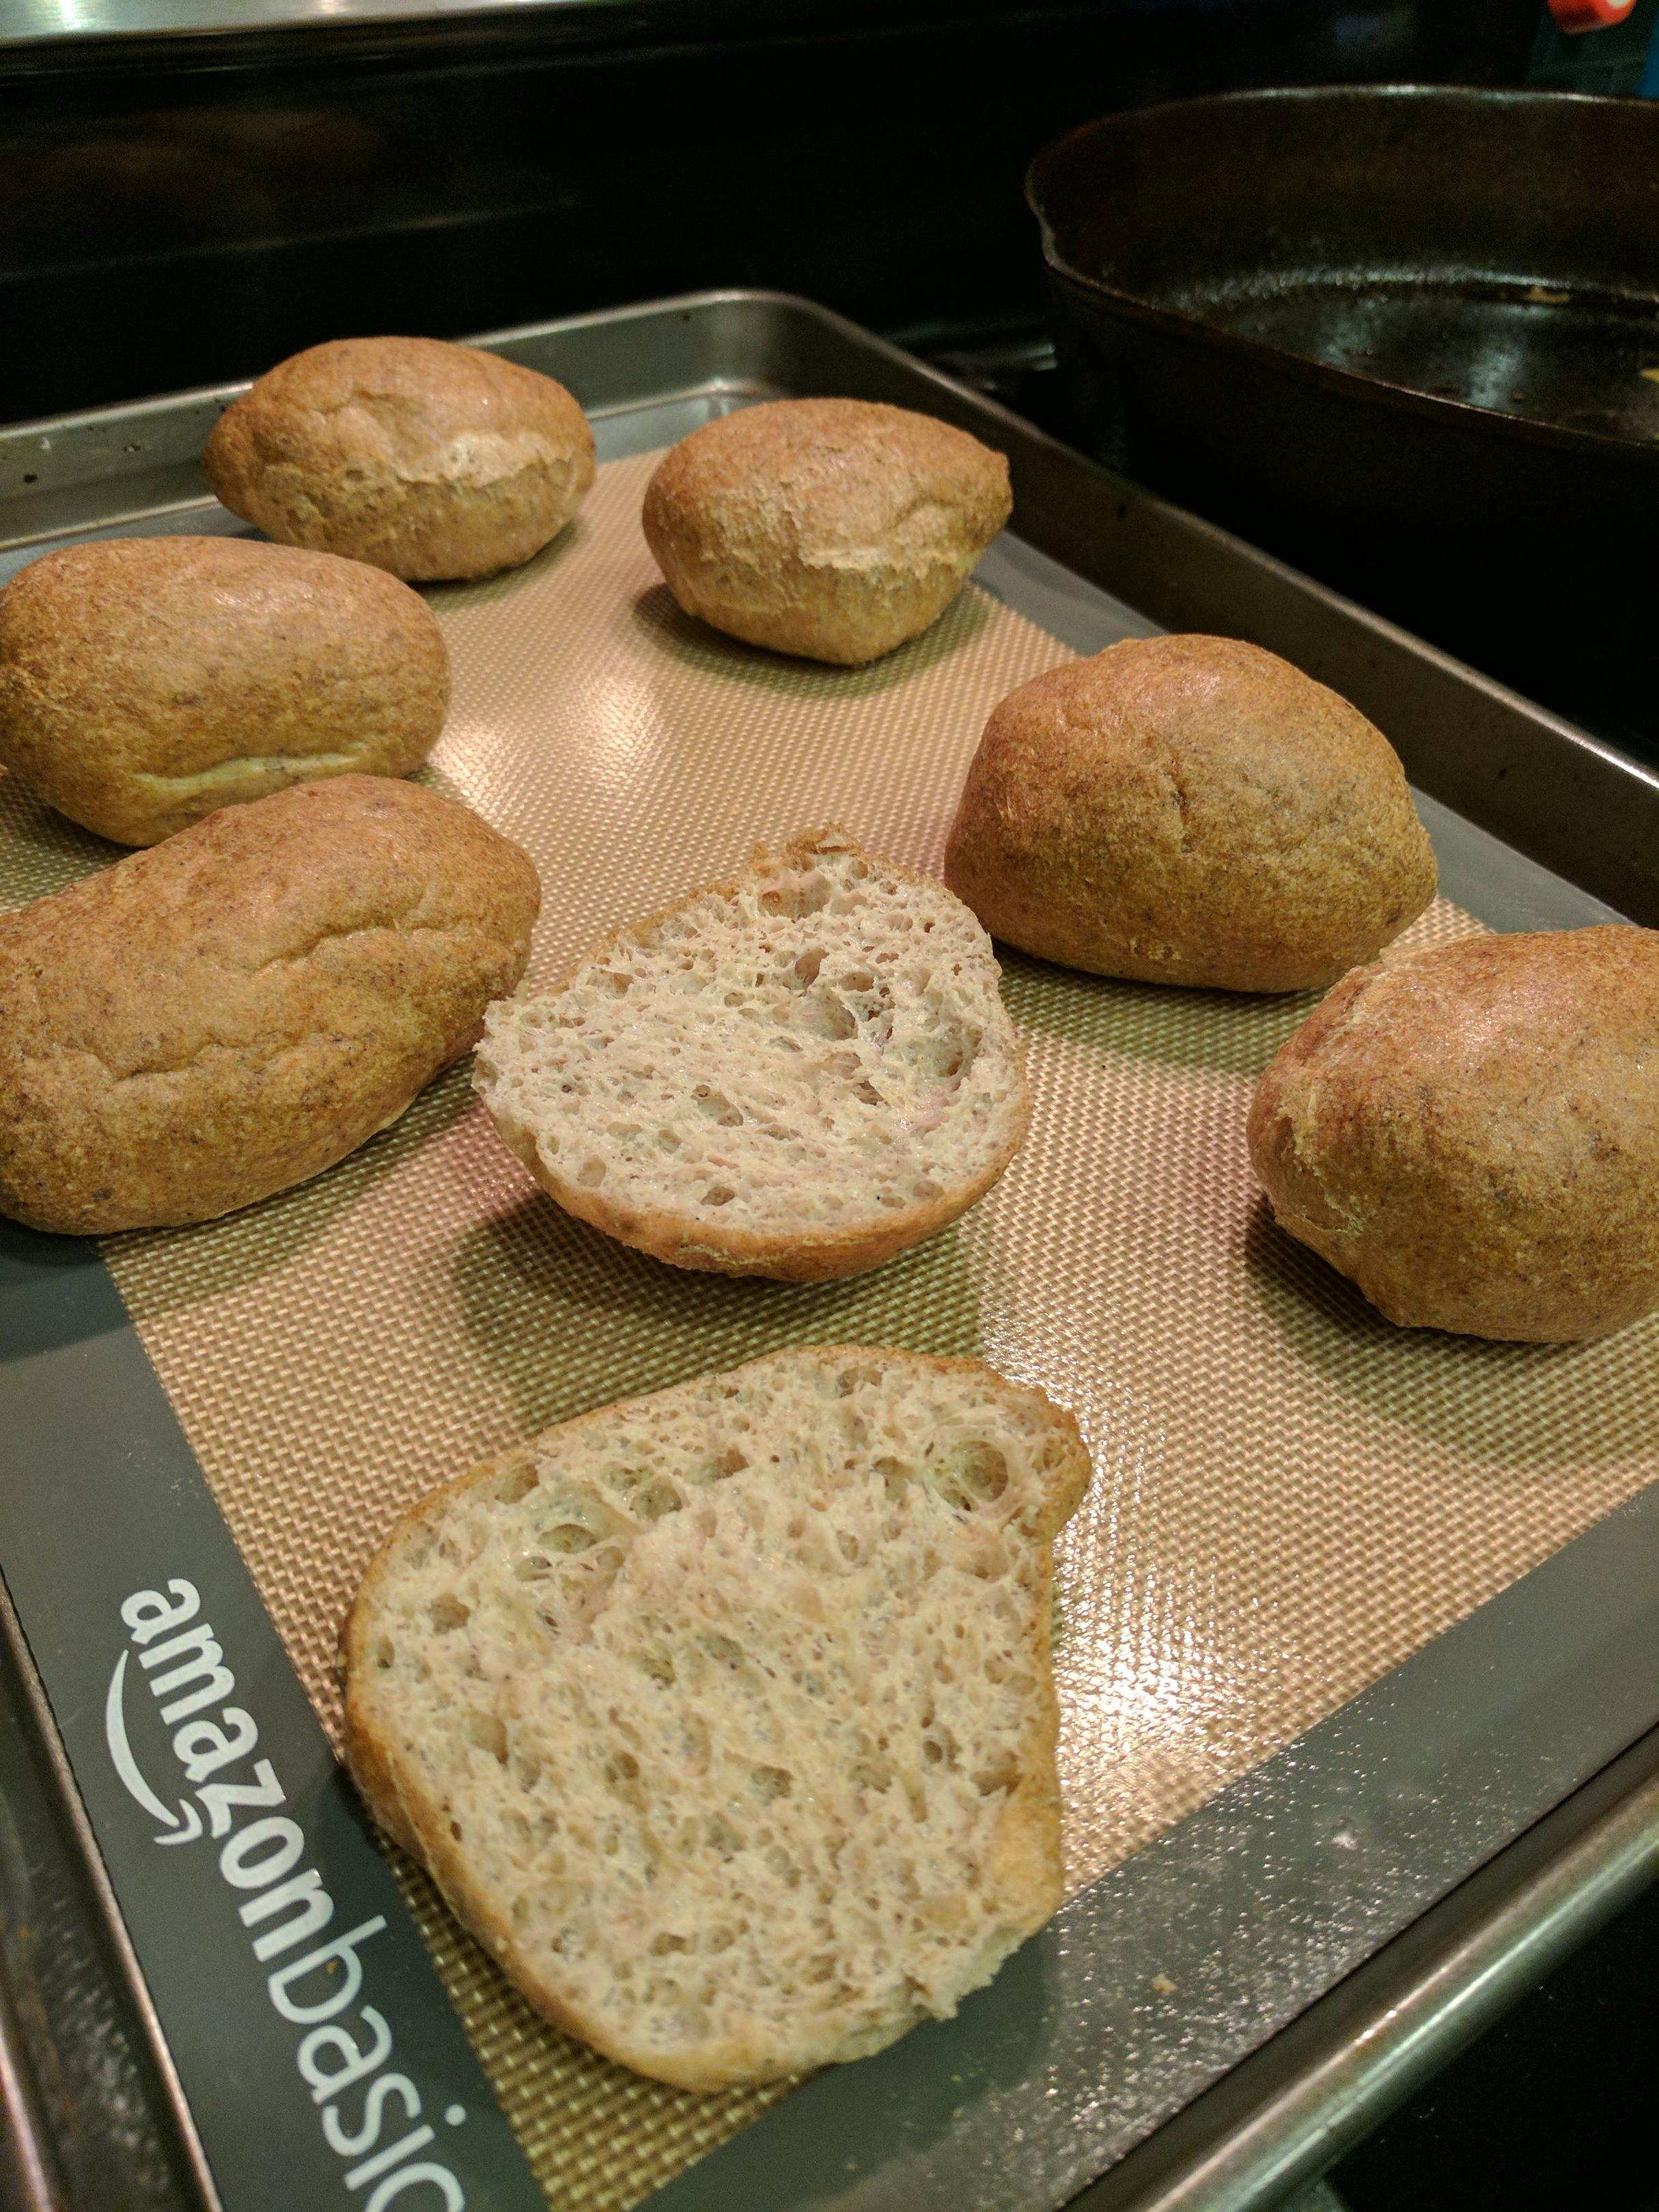 6 years of keto recipes later, this is by far the best bread substitute I have ever tried. Just look at these rolls…